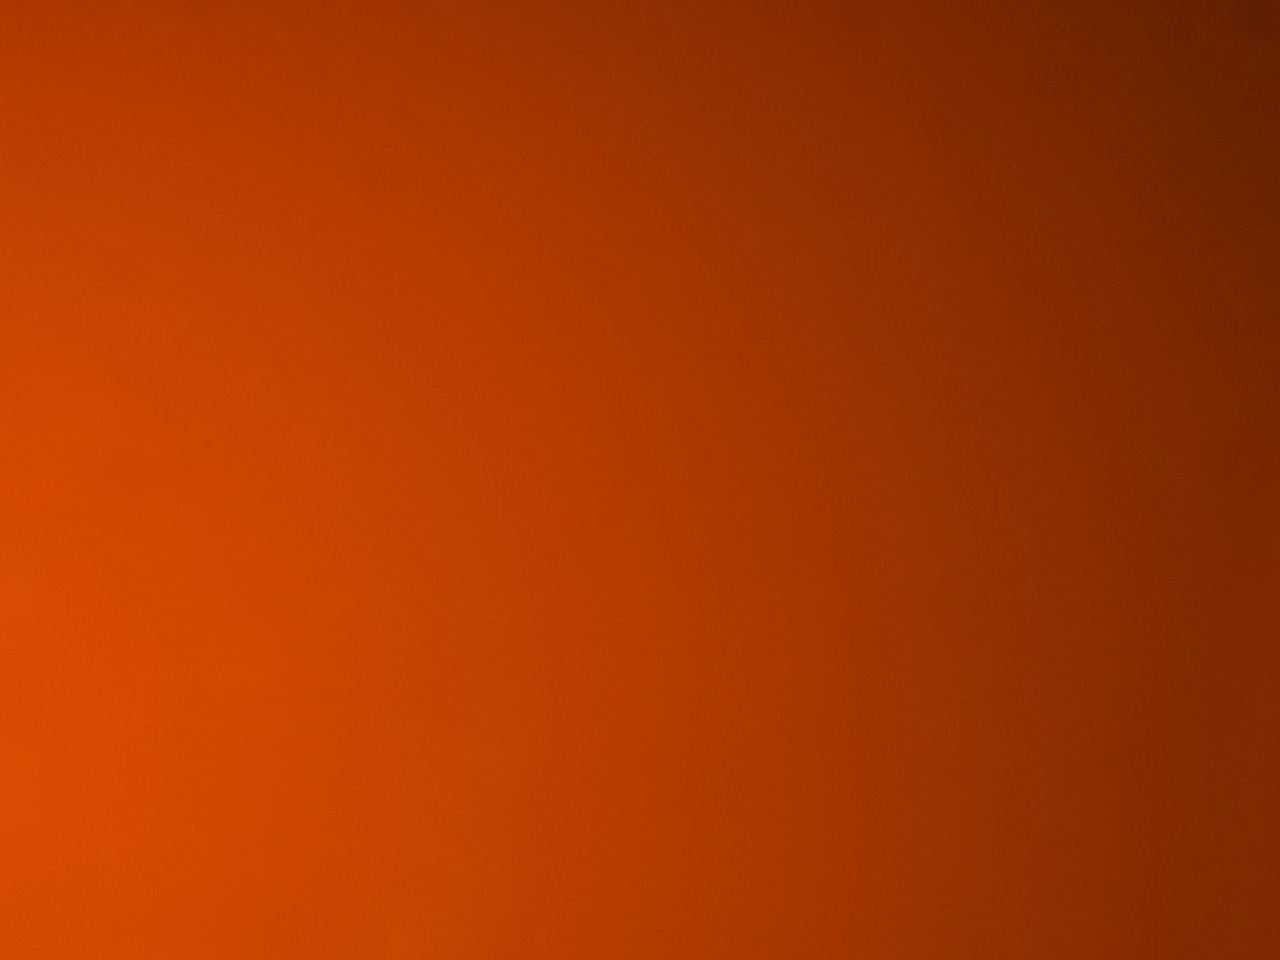 Dark Orange   Transparent  Smooth texture